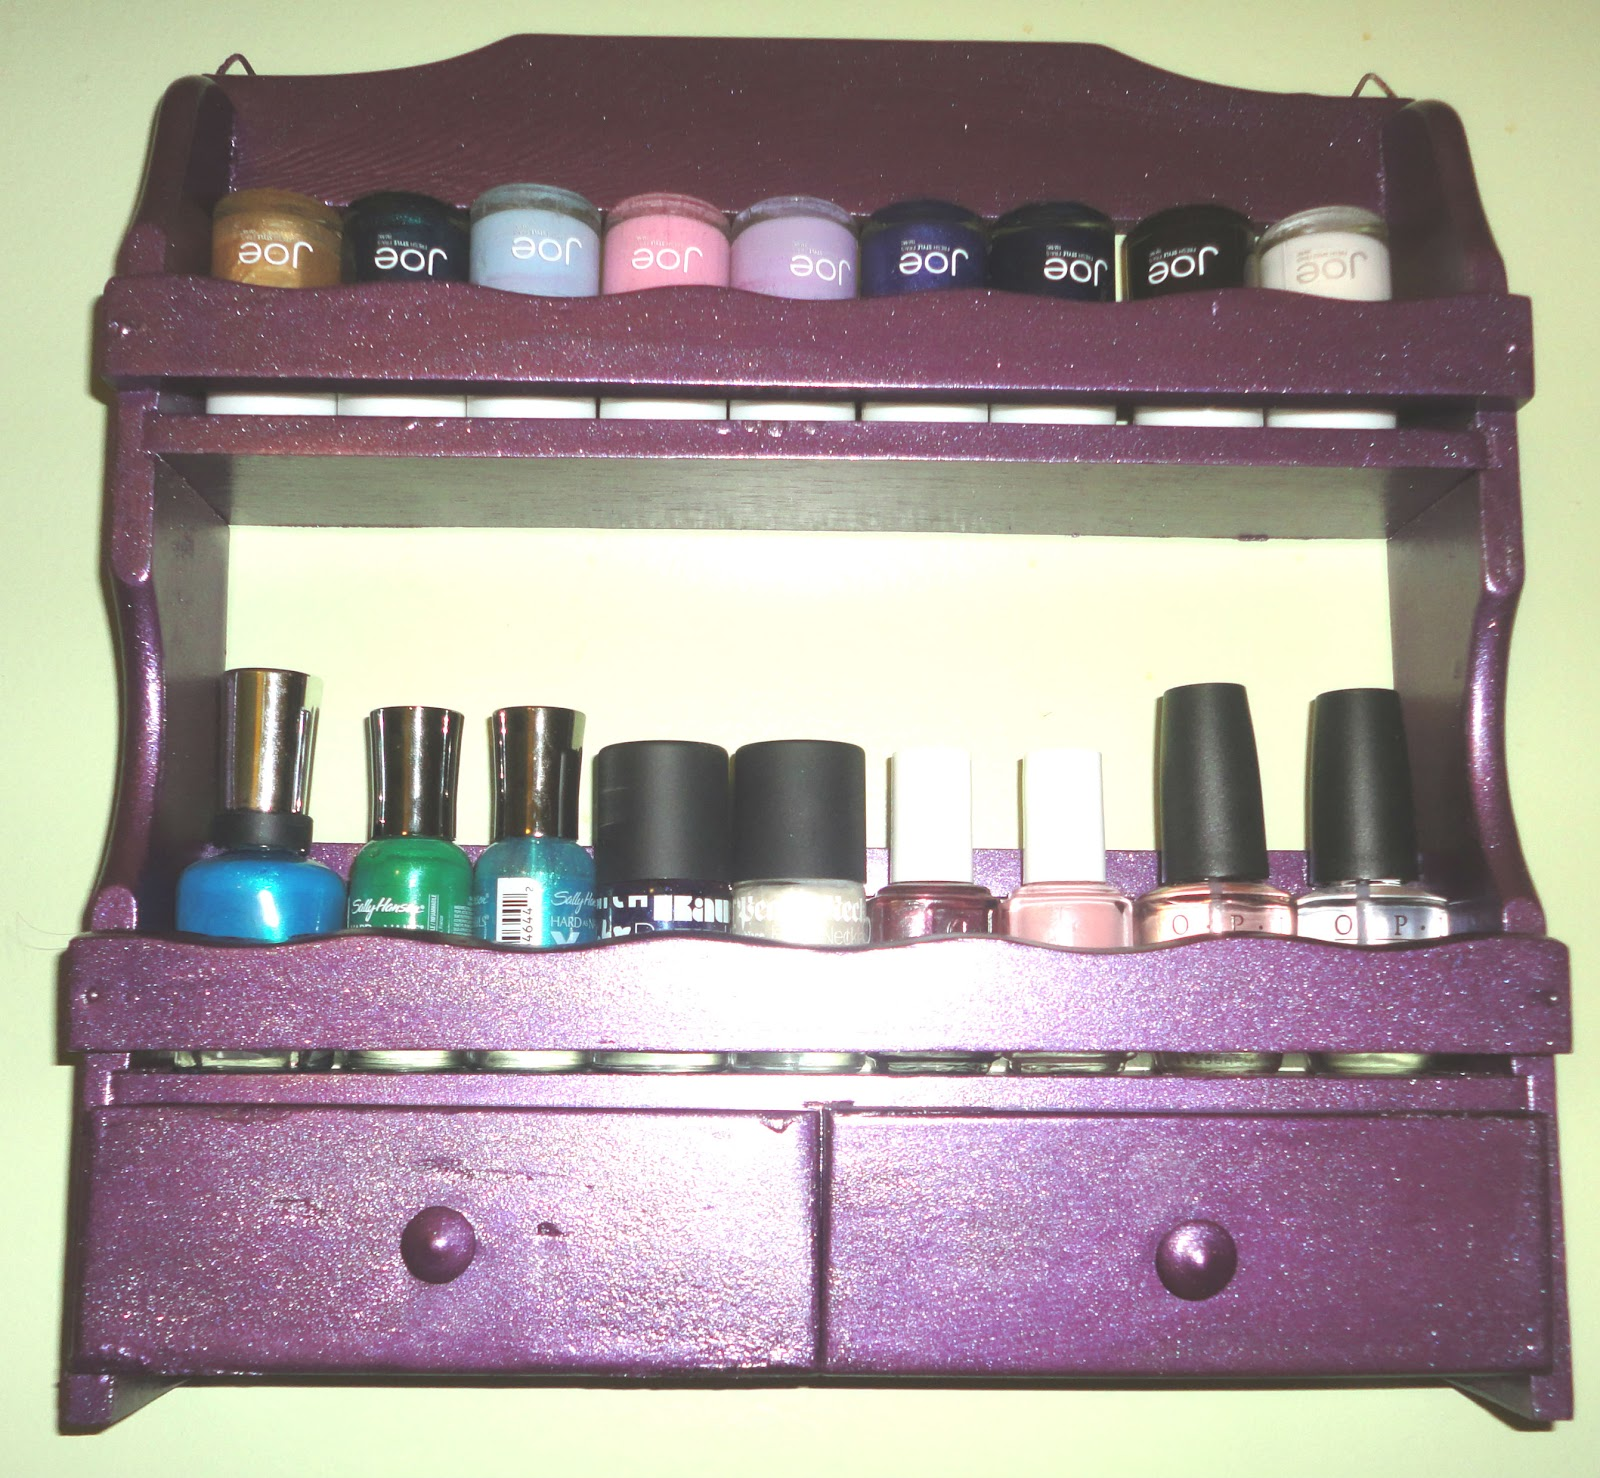 31 DIY Racks for Nail Polish Display | Guide Patterns